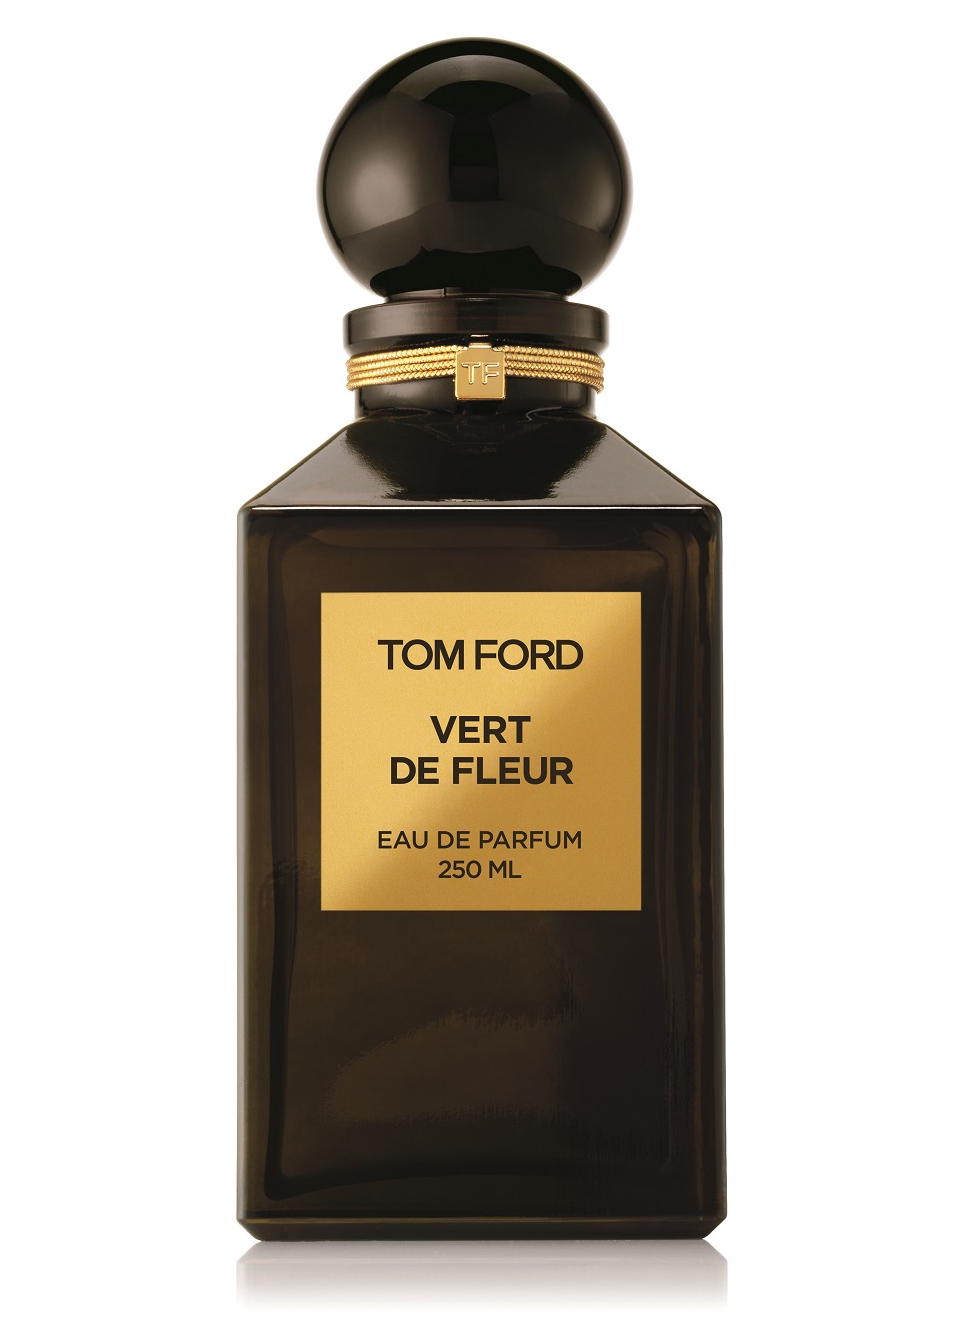 vert de fleur tom ford perfume a new fragrance for women. Black Bedroom Furniture Sets. Home Design Ideas